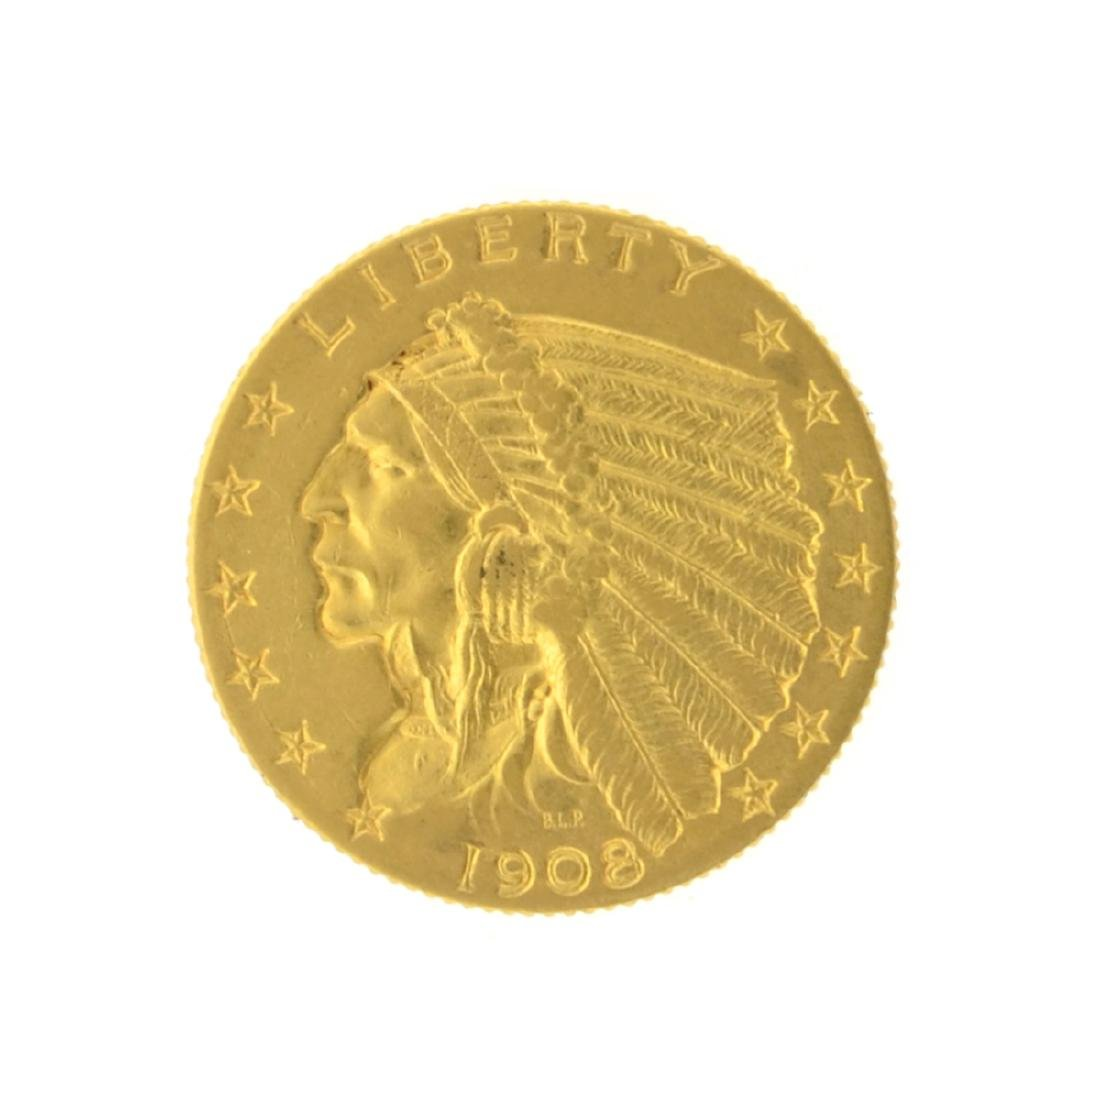 1908 $2.50 Indian Head Gold Coin